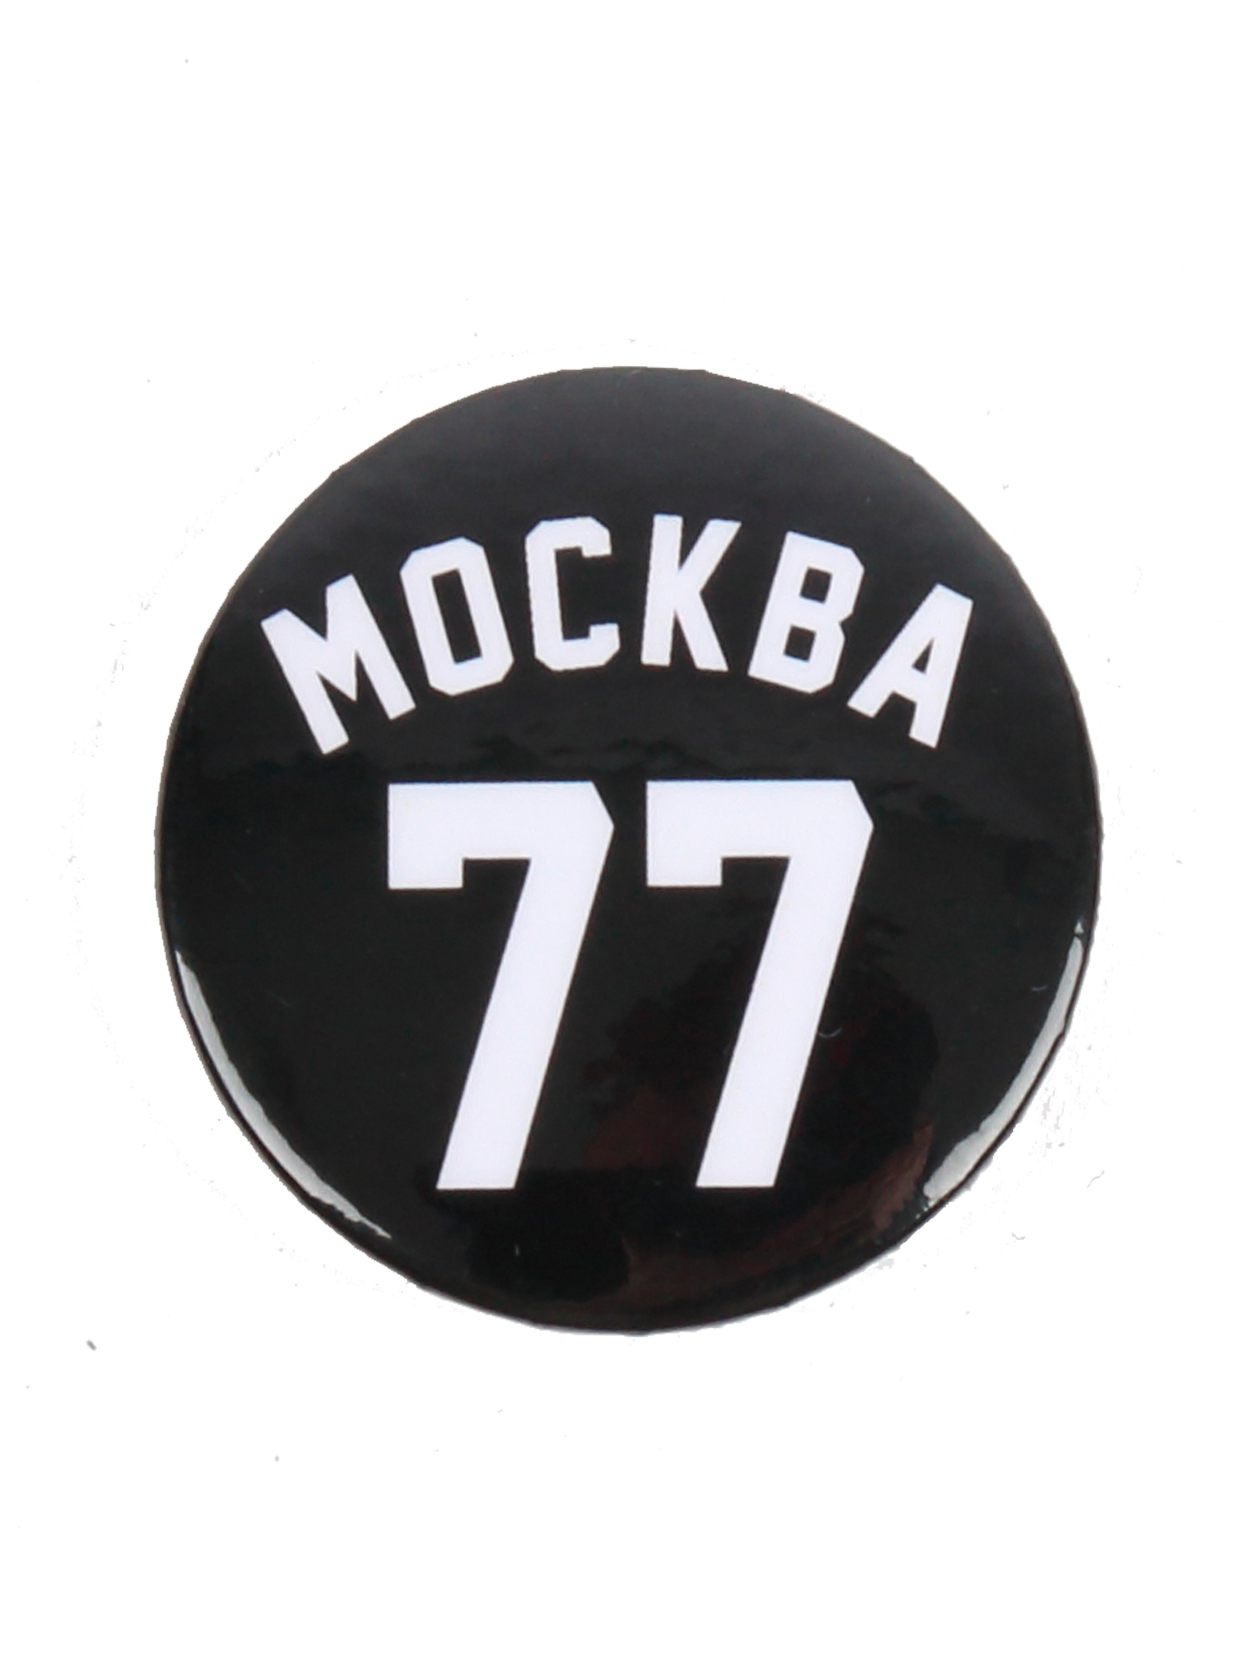 Значок MOSCOW 77 от Black Star